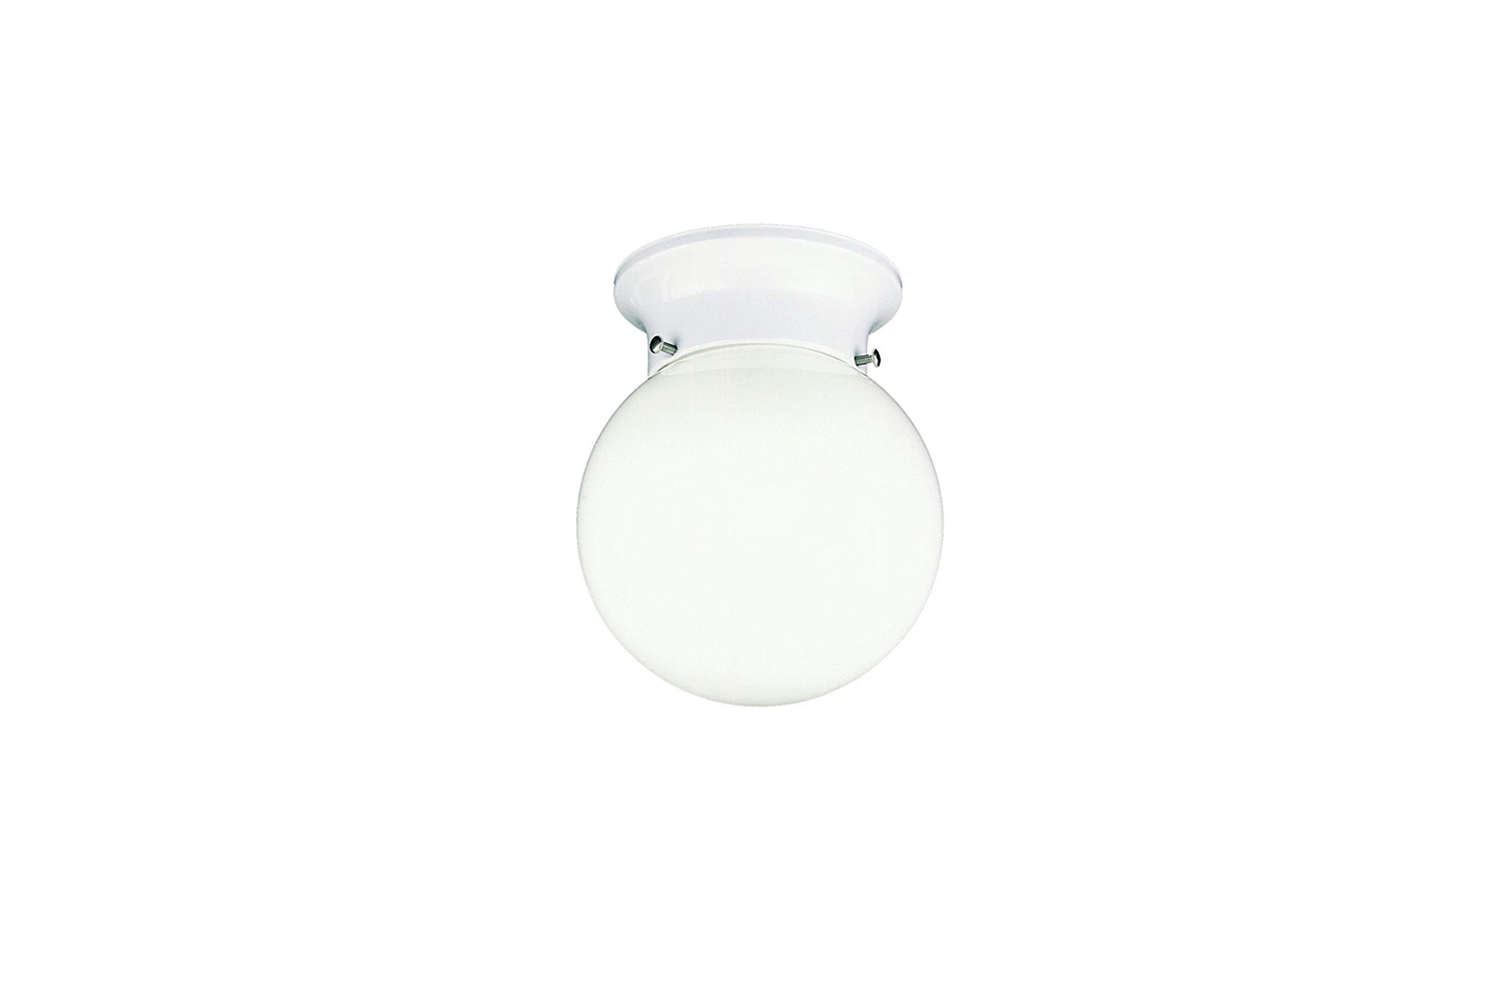 Another budget option is the simple Essentials Ceiling Light Matte White; $.99 at Amazon.